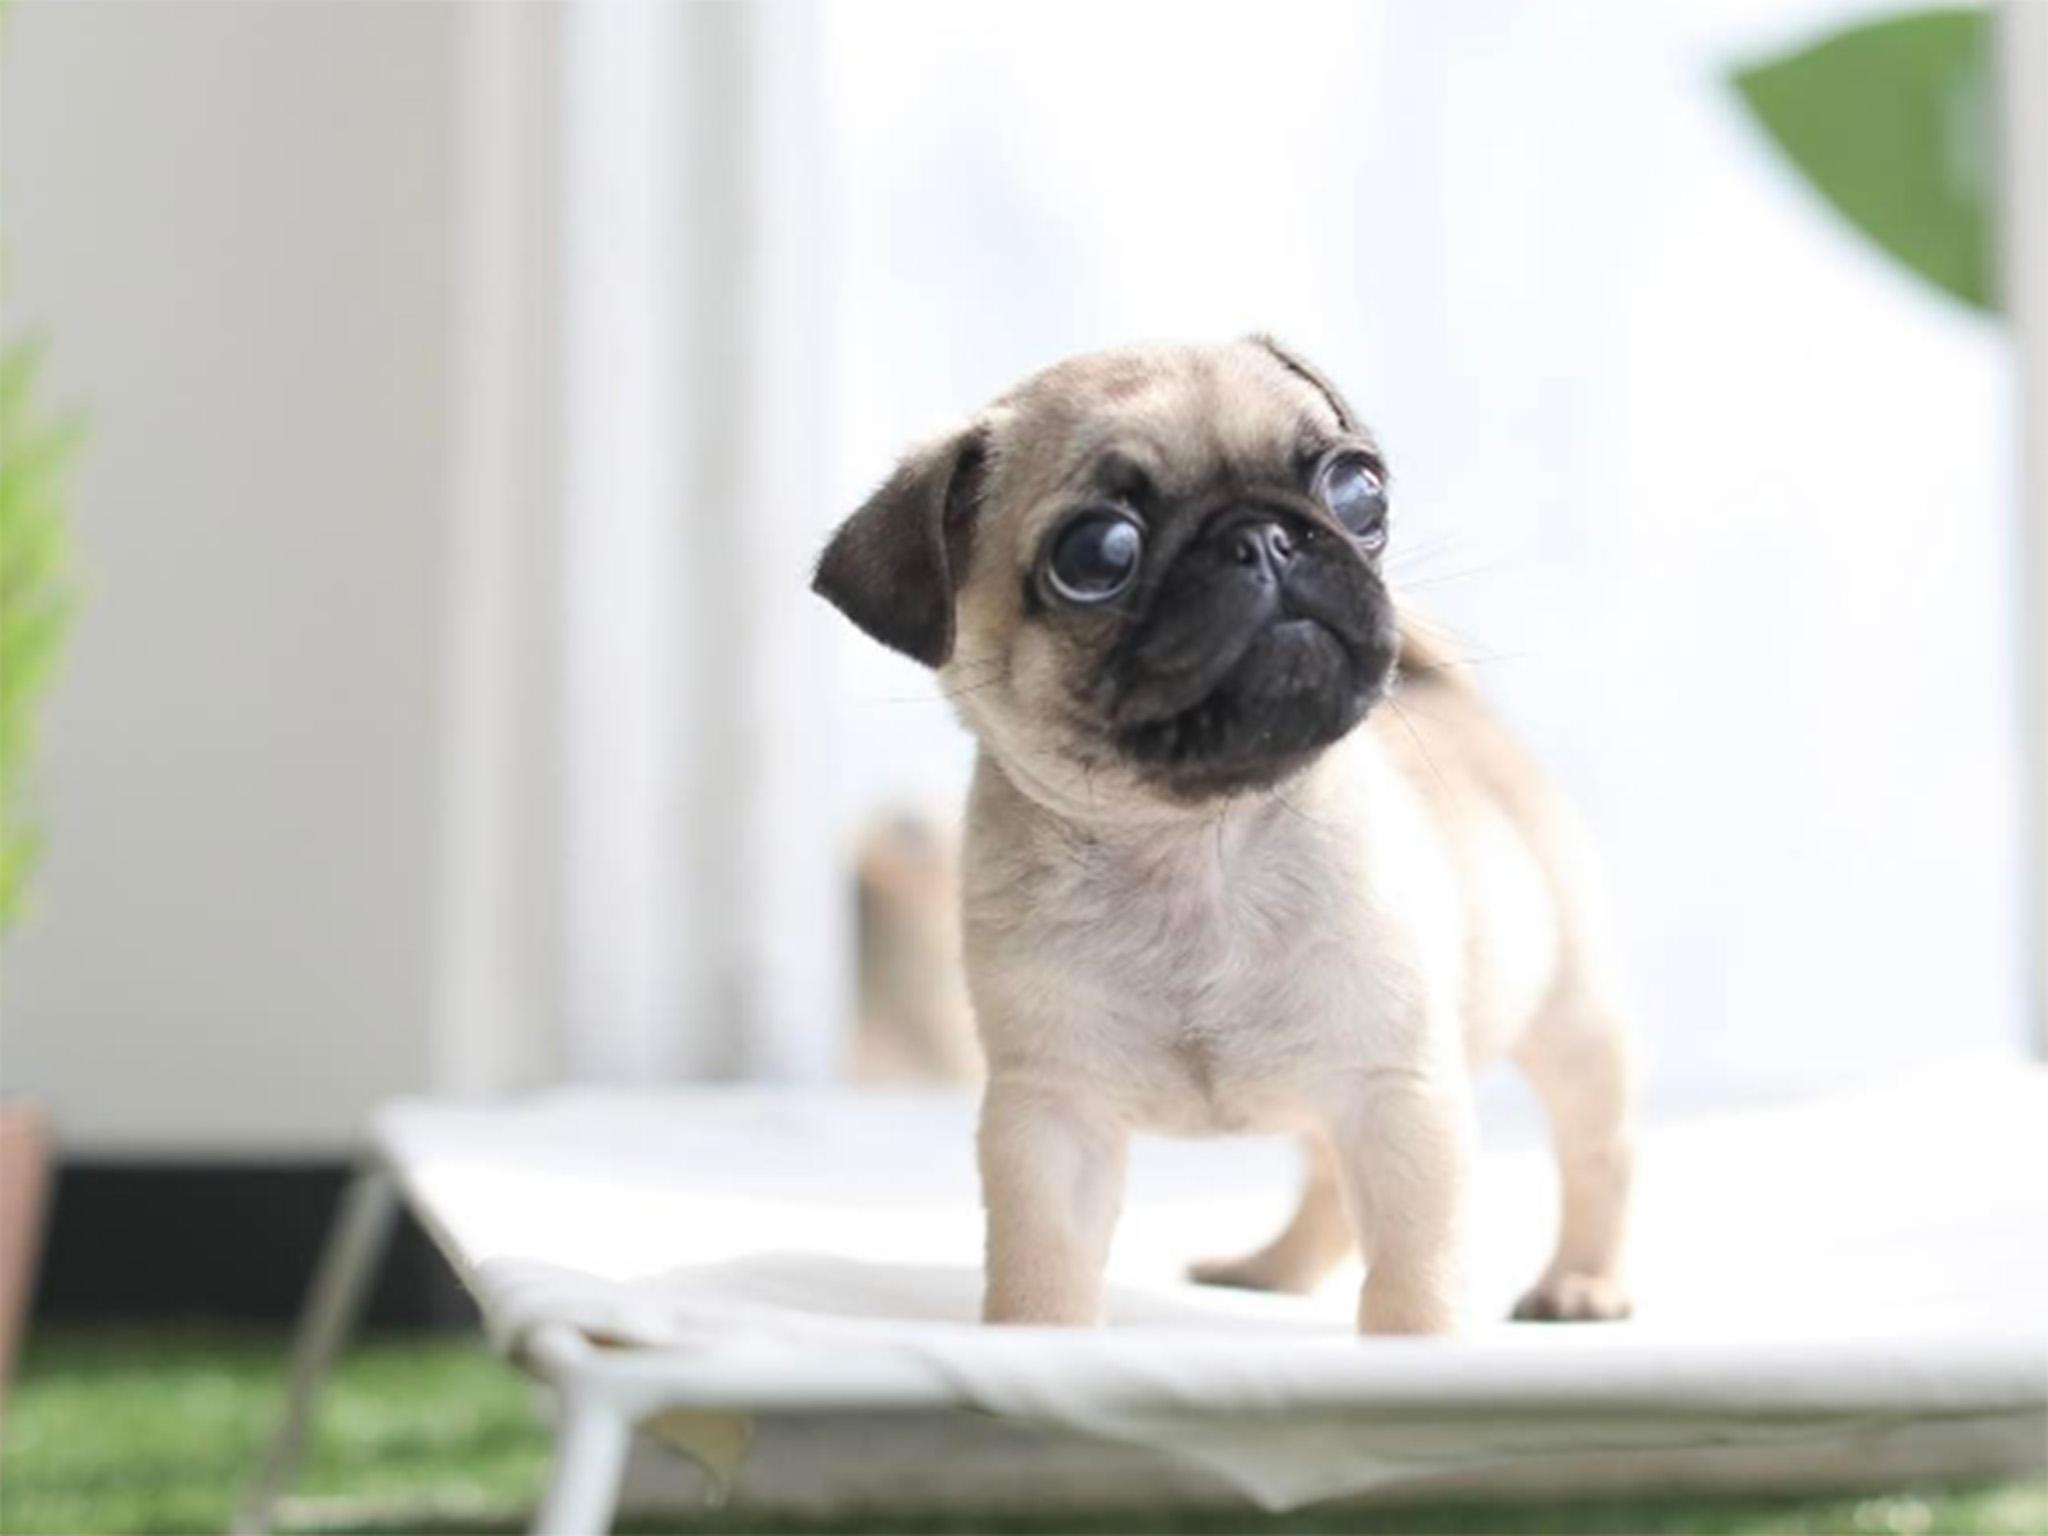 Dog welfare groups warn teacup puppy craze is harmful to pets | The ...